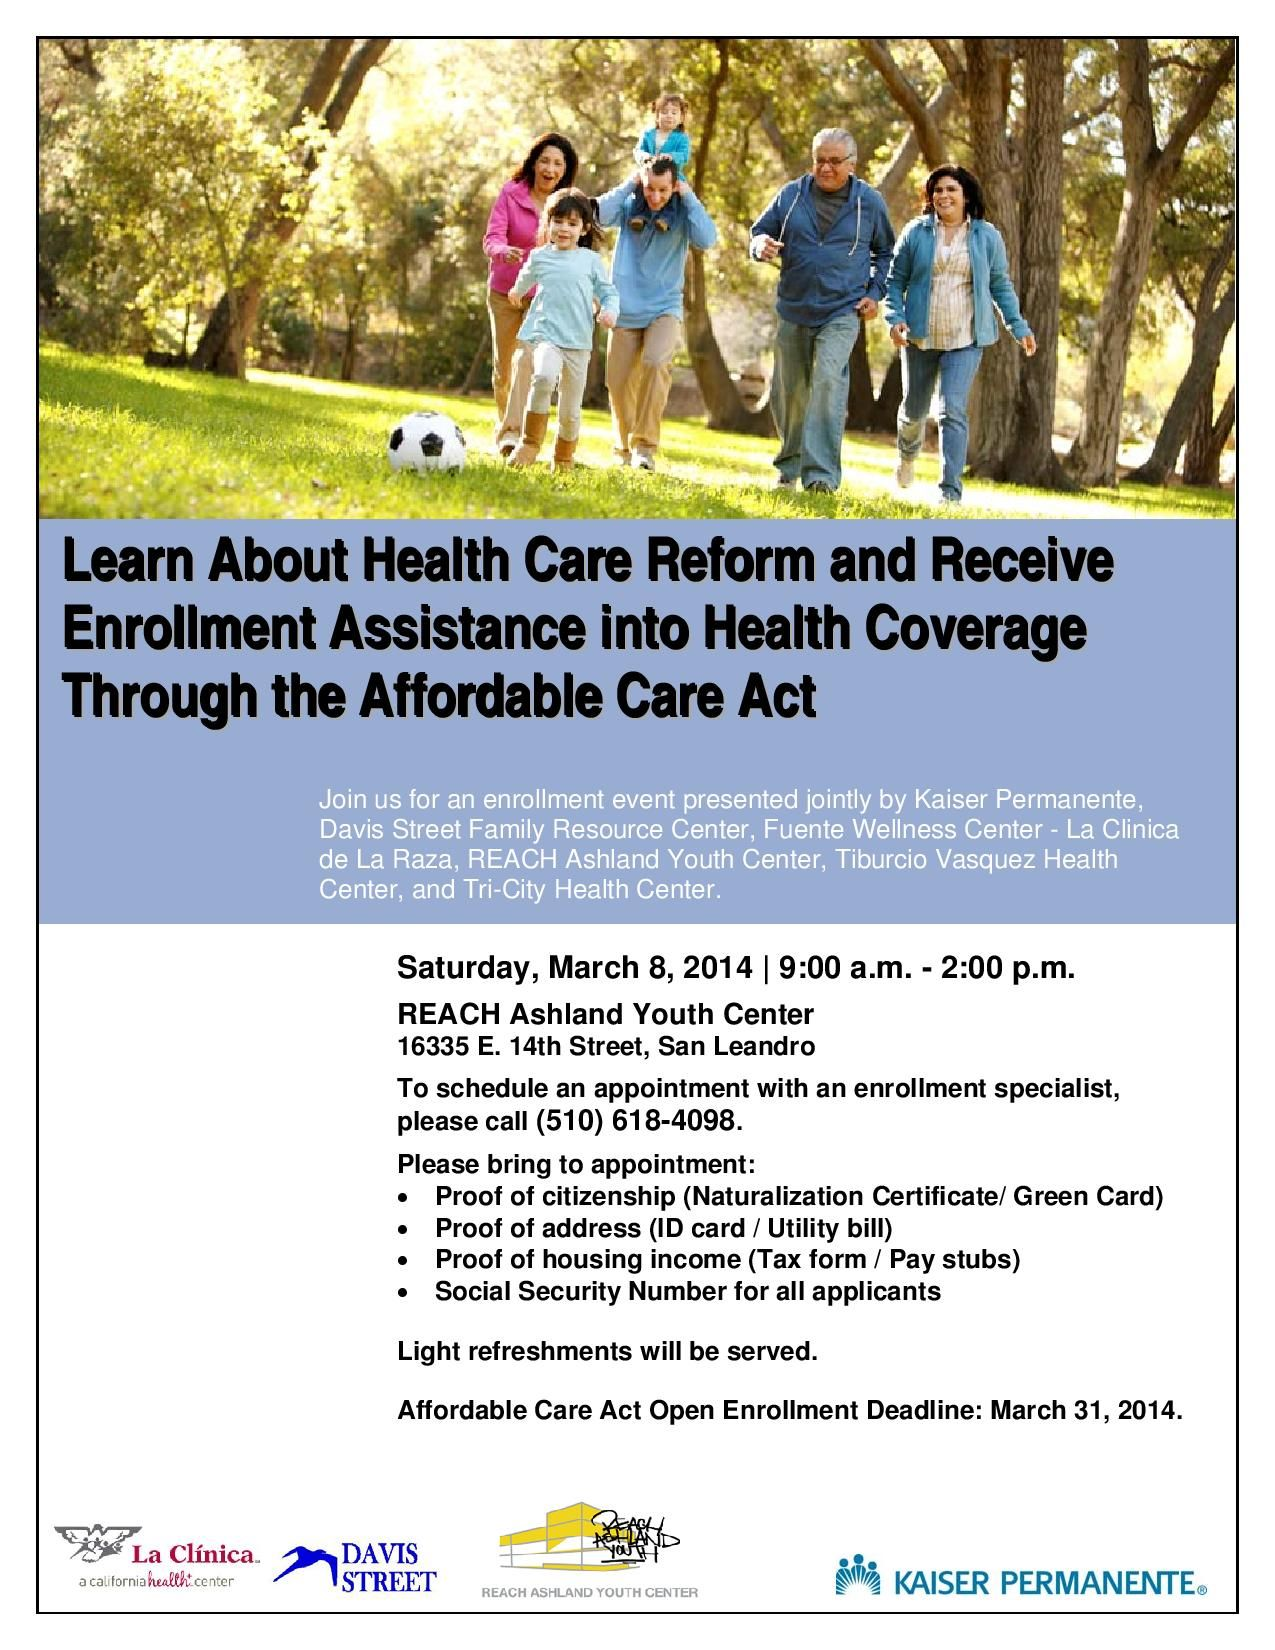 Health Care Enrollment Assistance With Images Health Care